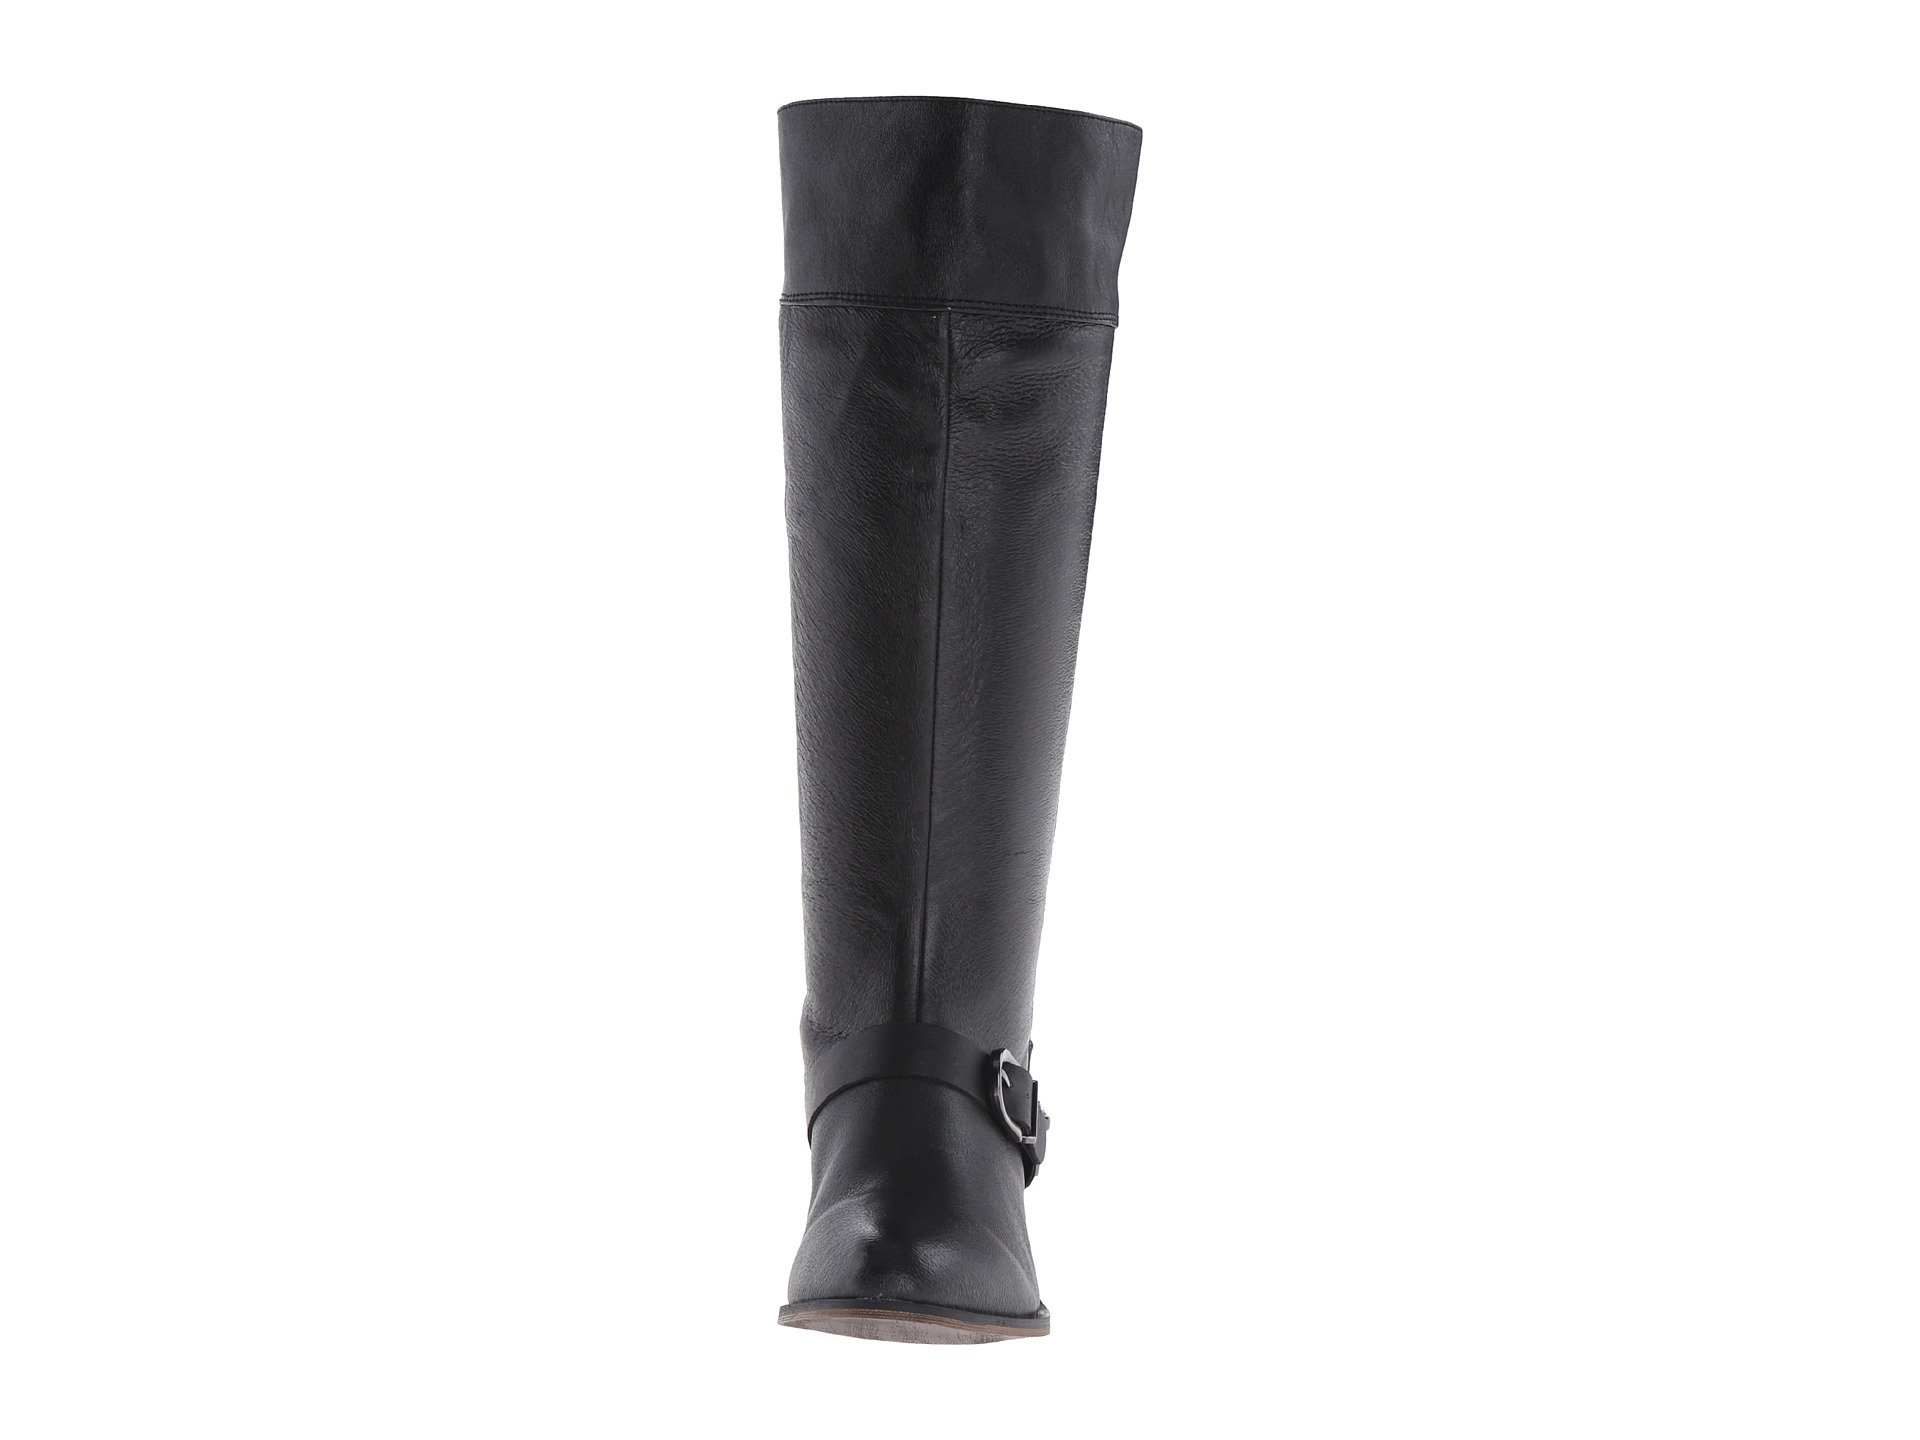 Chinese Laundry Solar Knee High Buckled Boot at 6pm